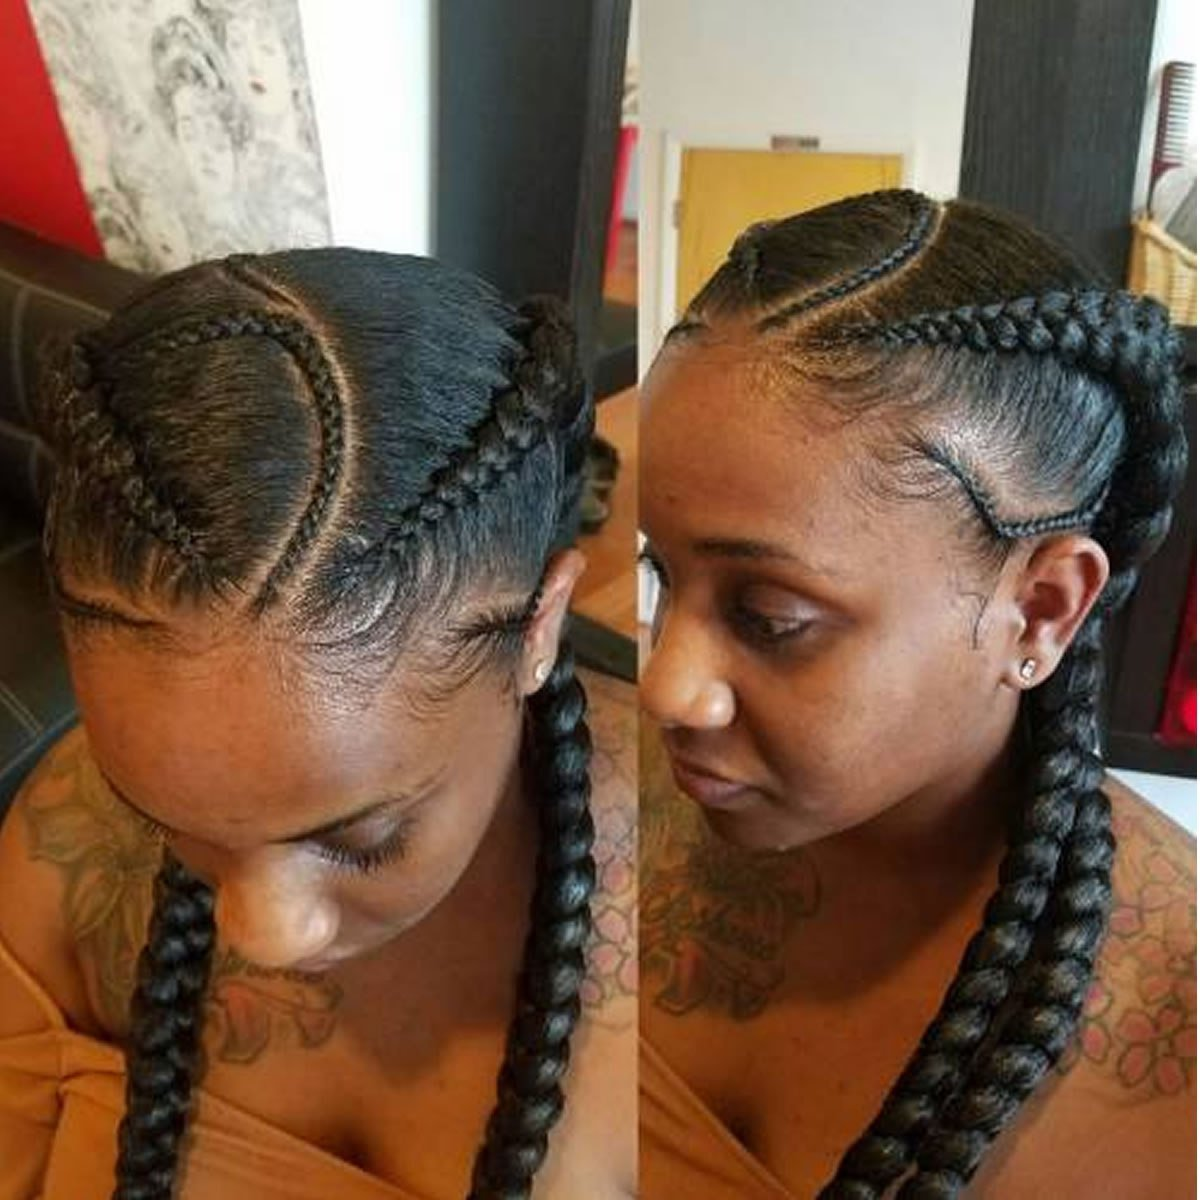 New 25 Incredibly Nice Ghana Braids Hairstyles For All Ideas With Pictures